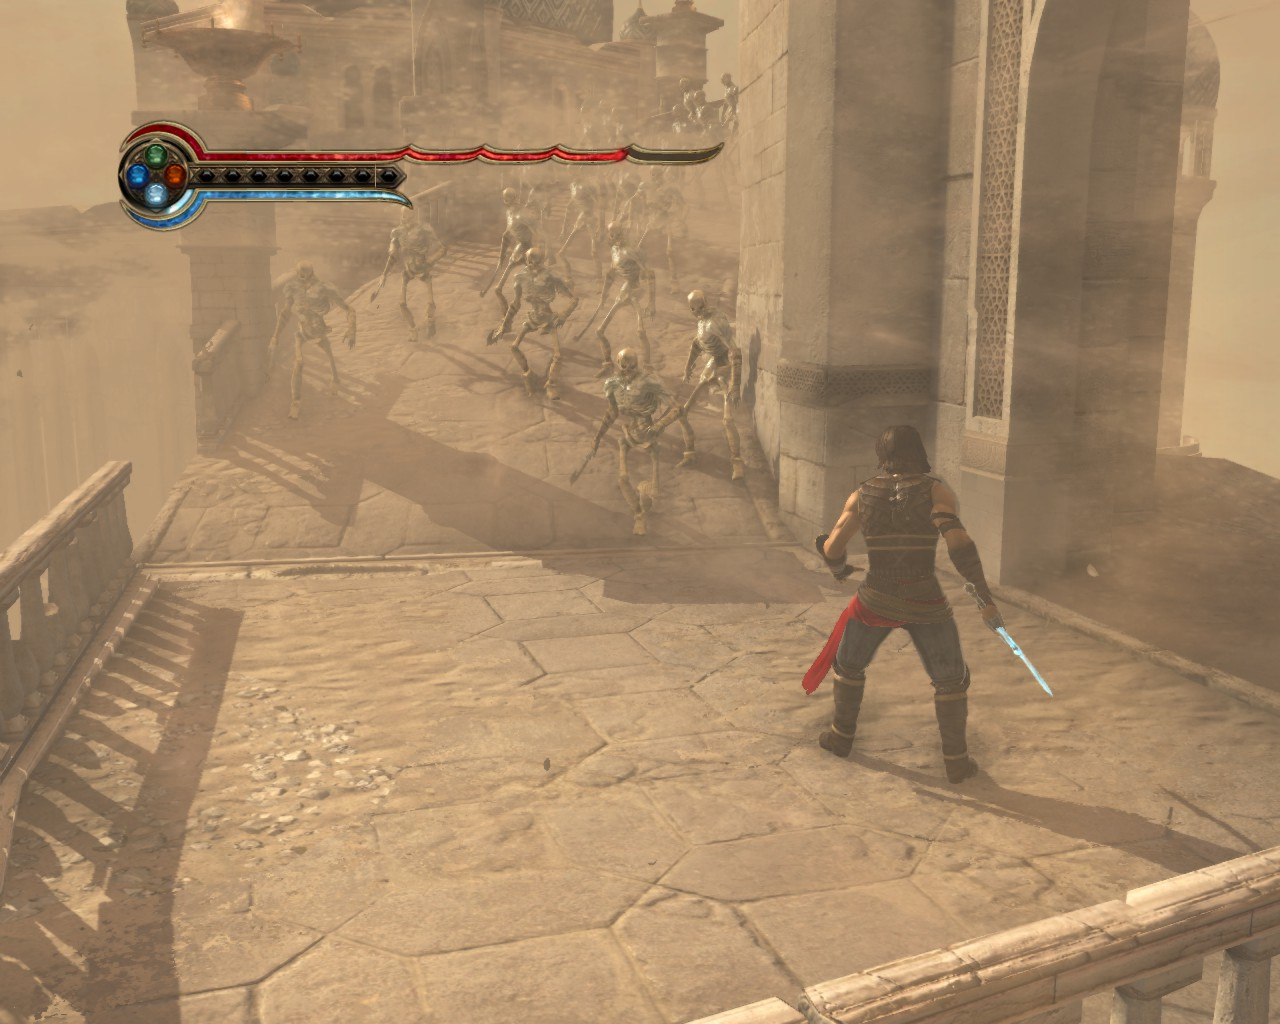 Prince of Persia 2014-06-04 20-15-08-51.jpg - Prince of Persia: The Forgotten Sands